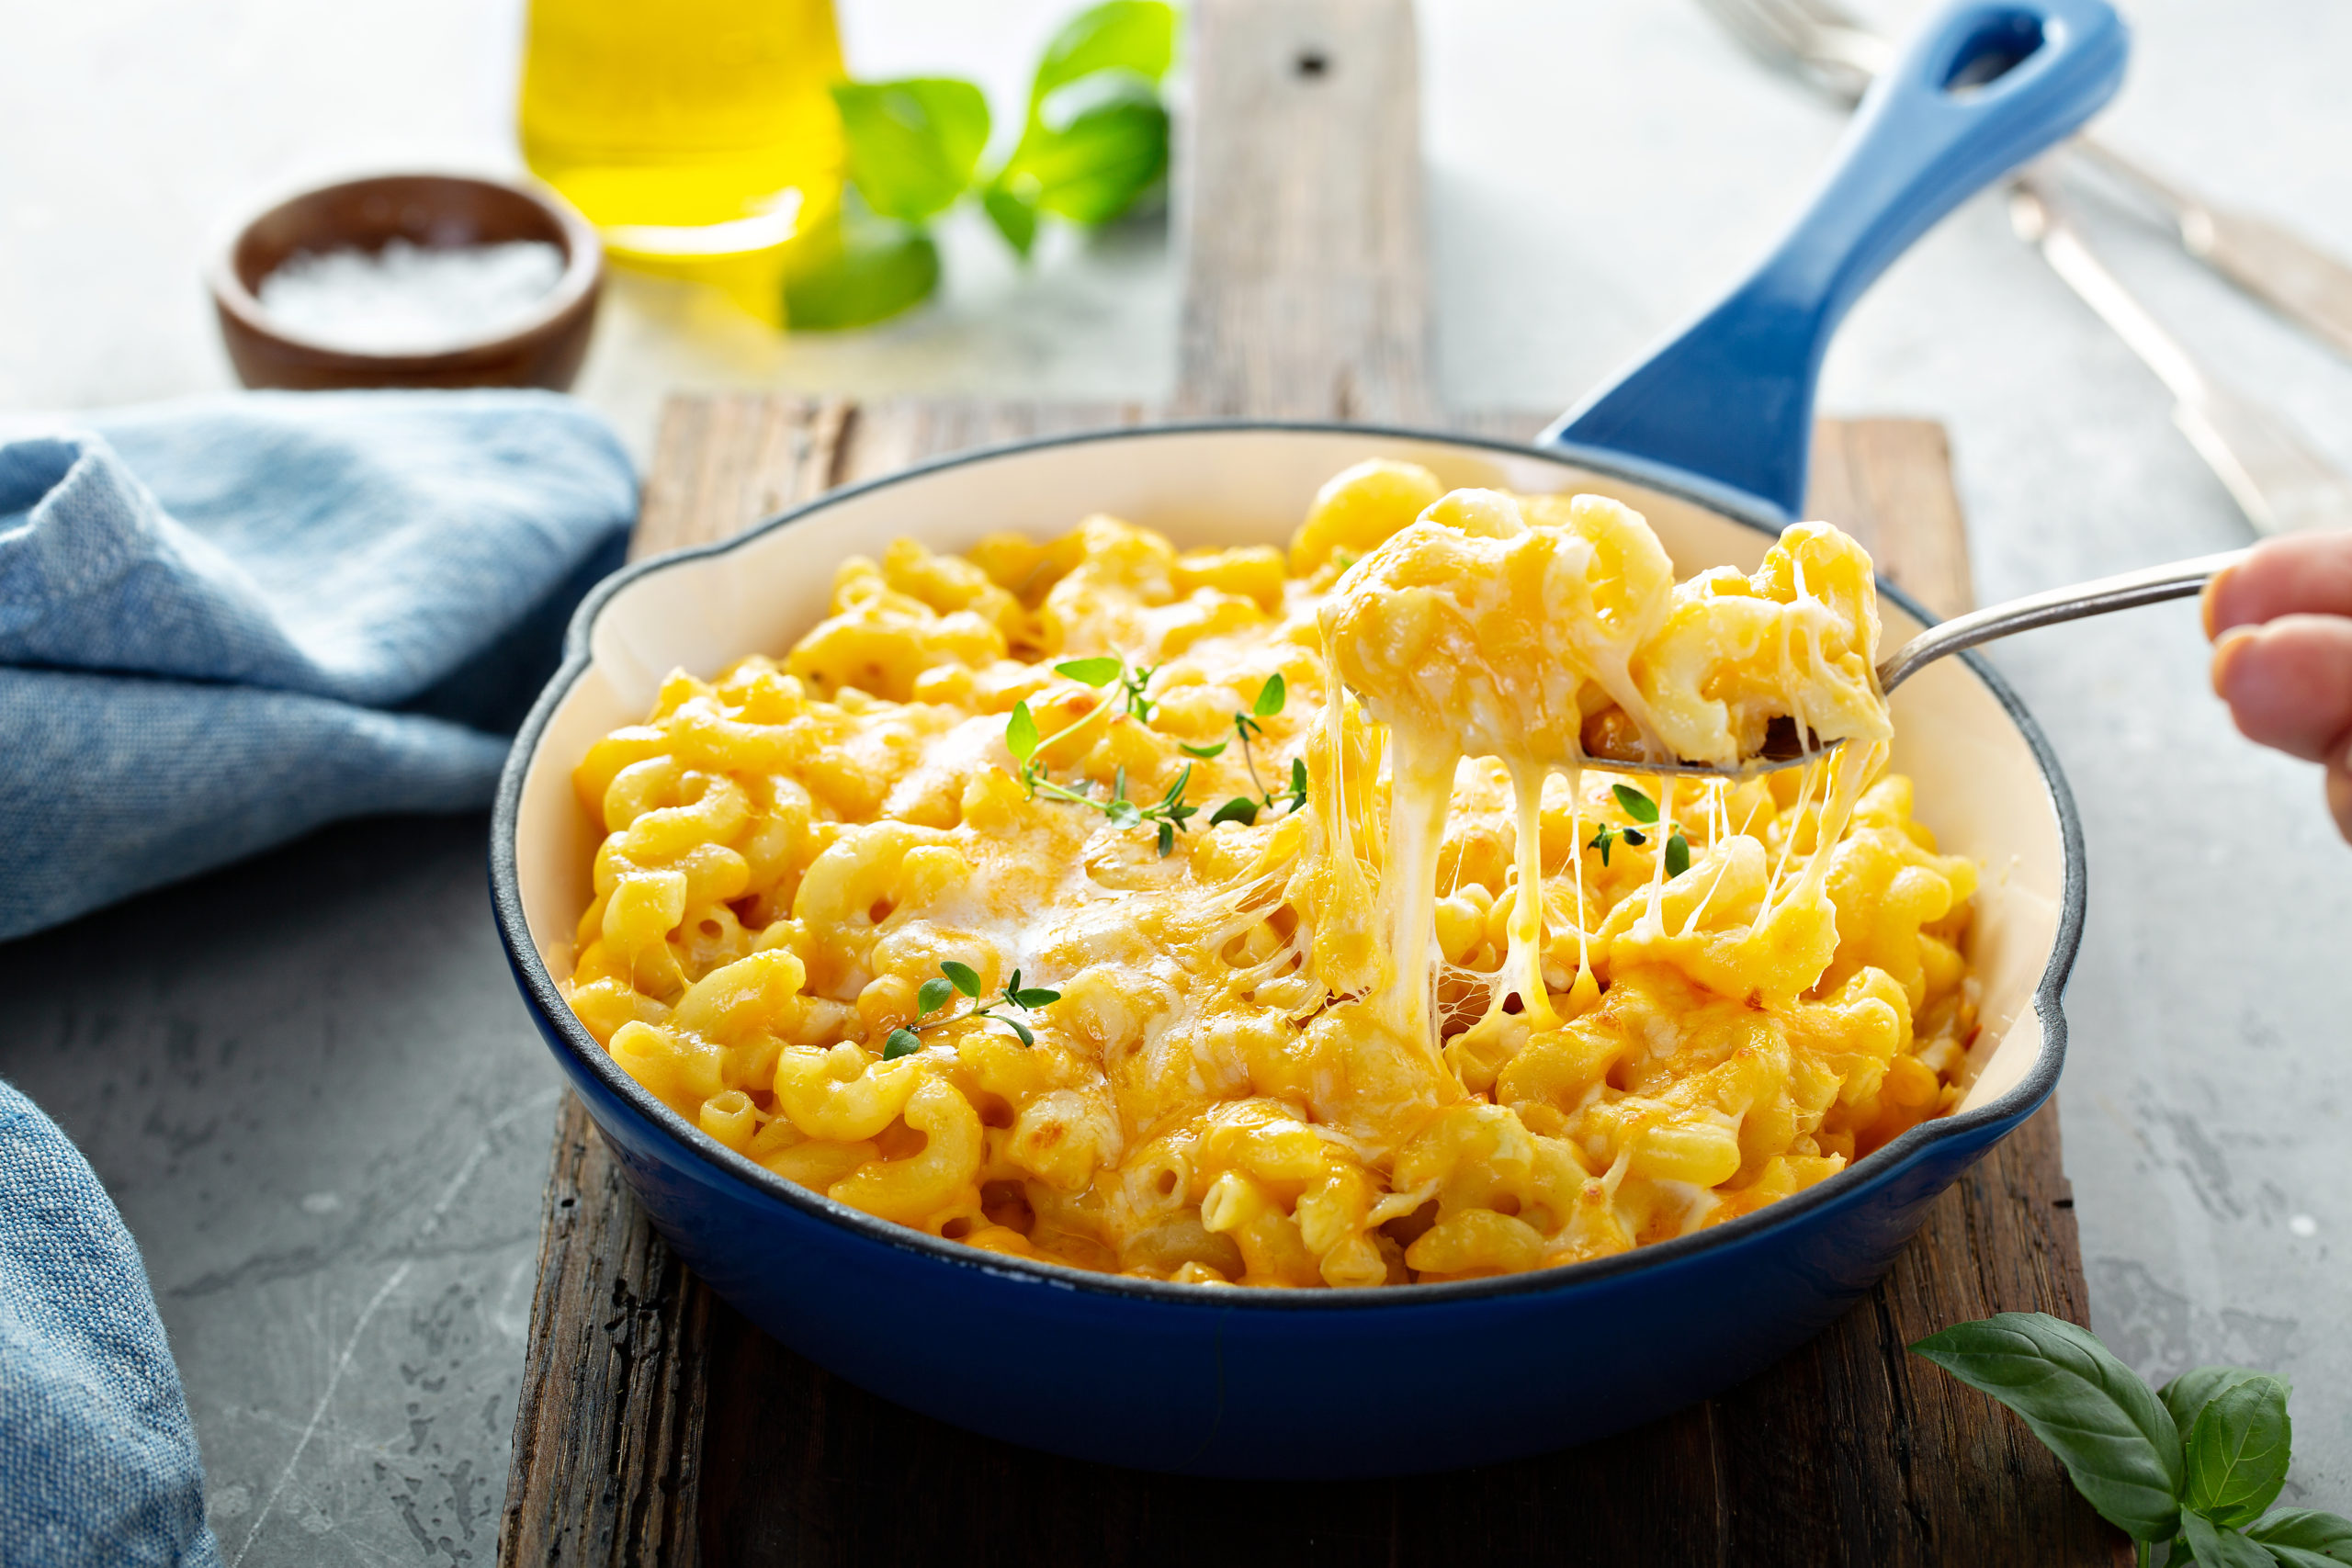 A bowl of mac and cheese from a Hanover restaurant